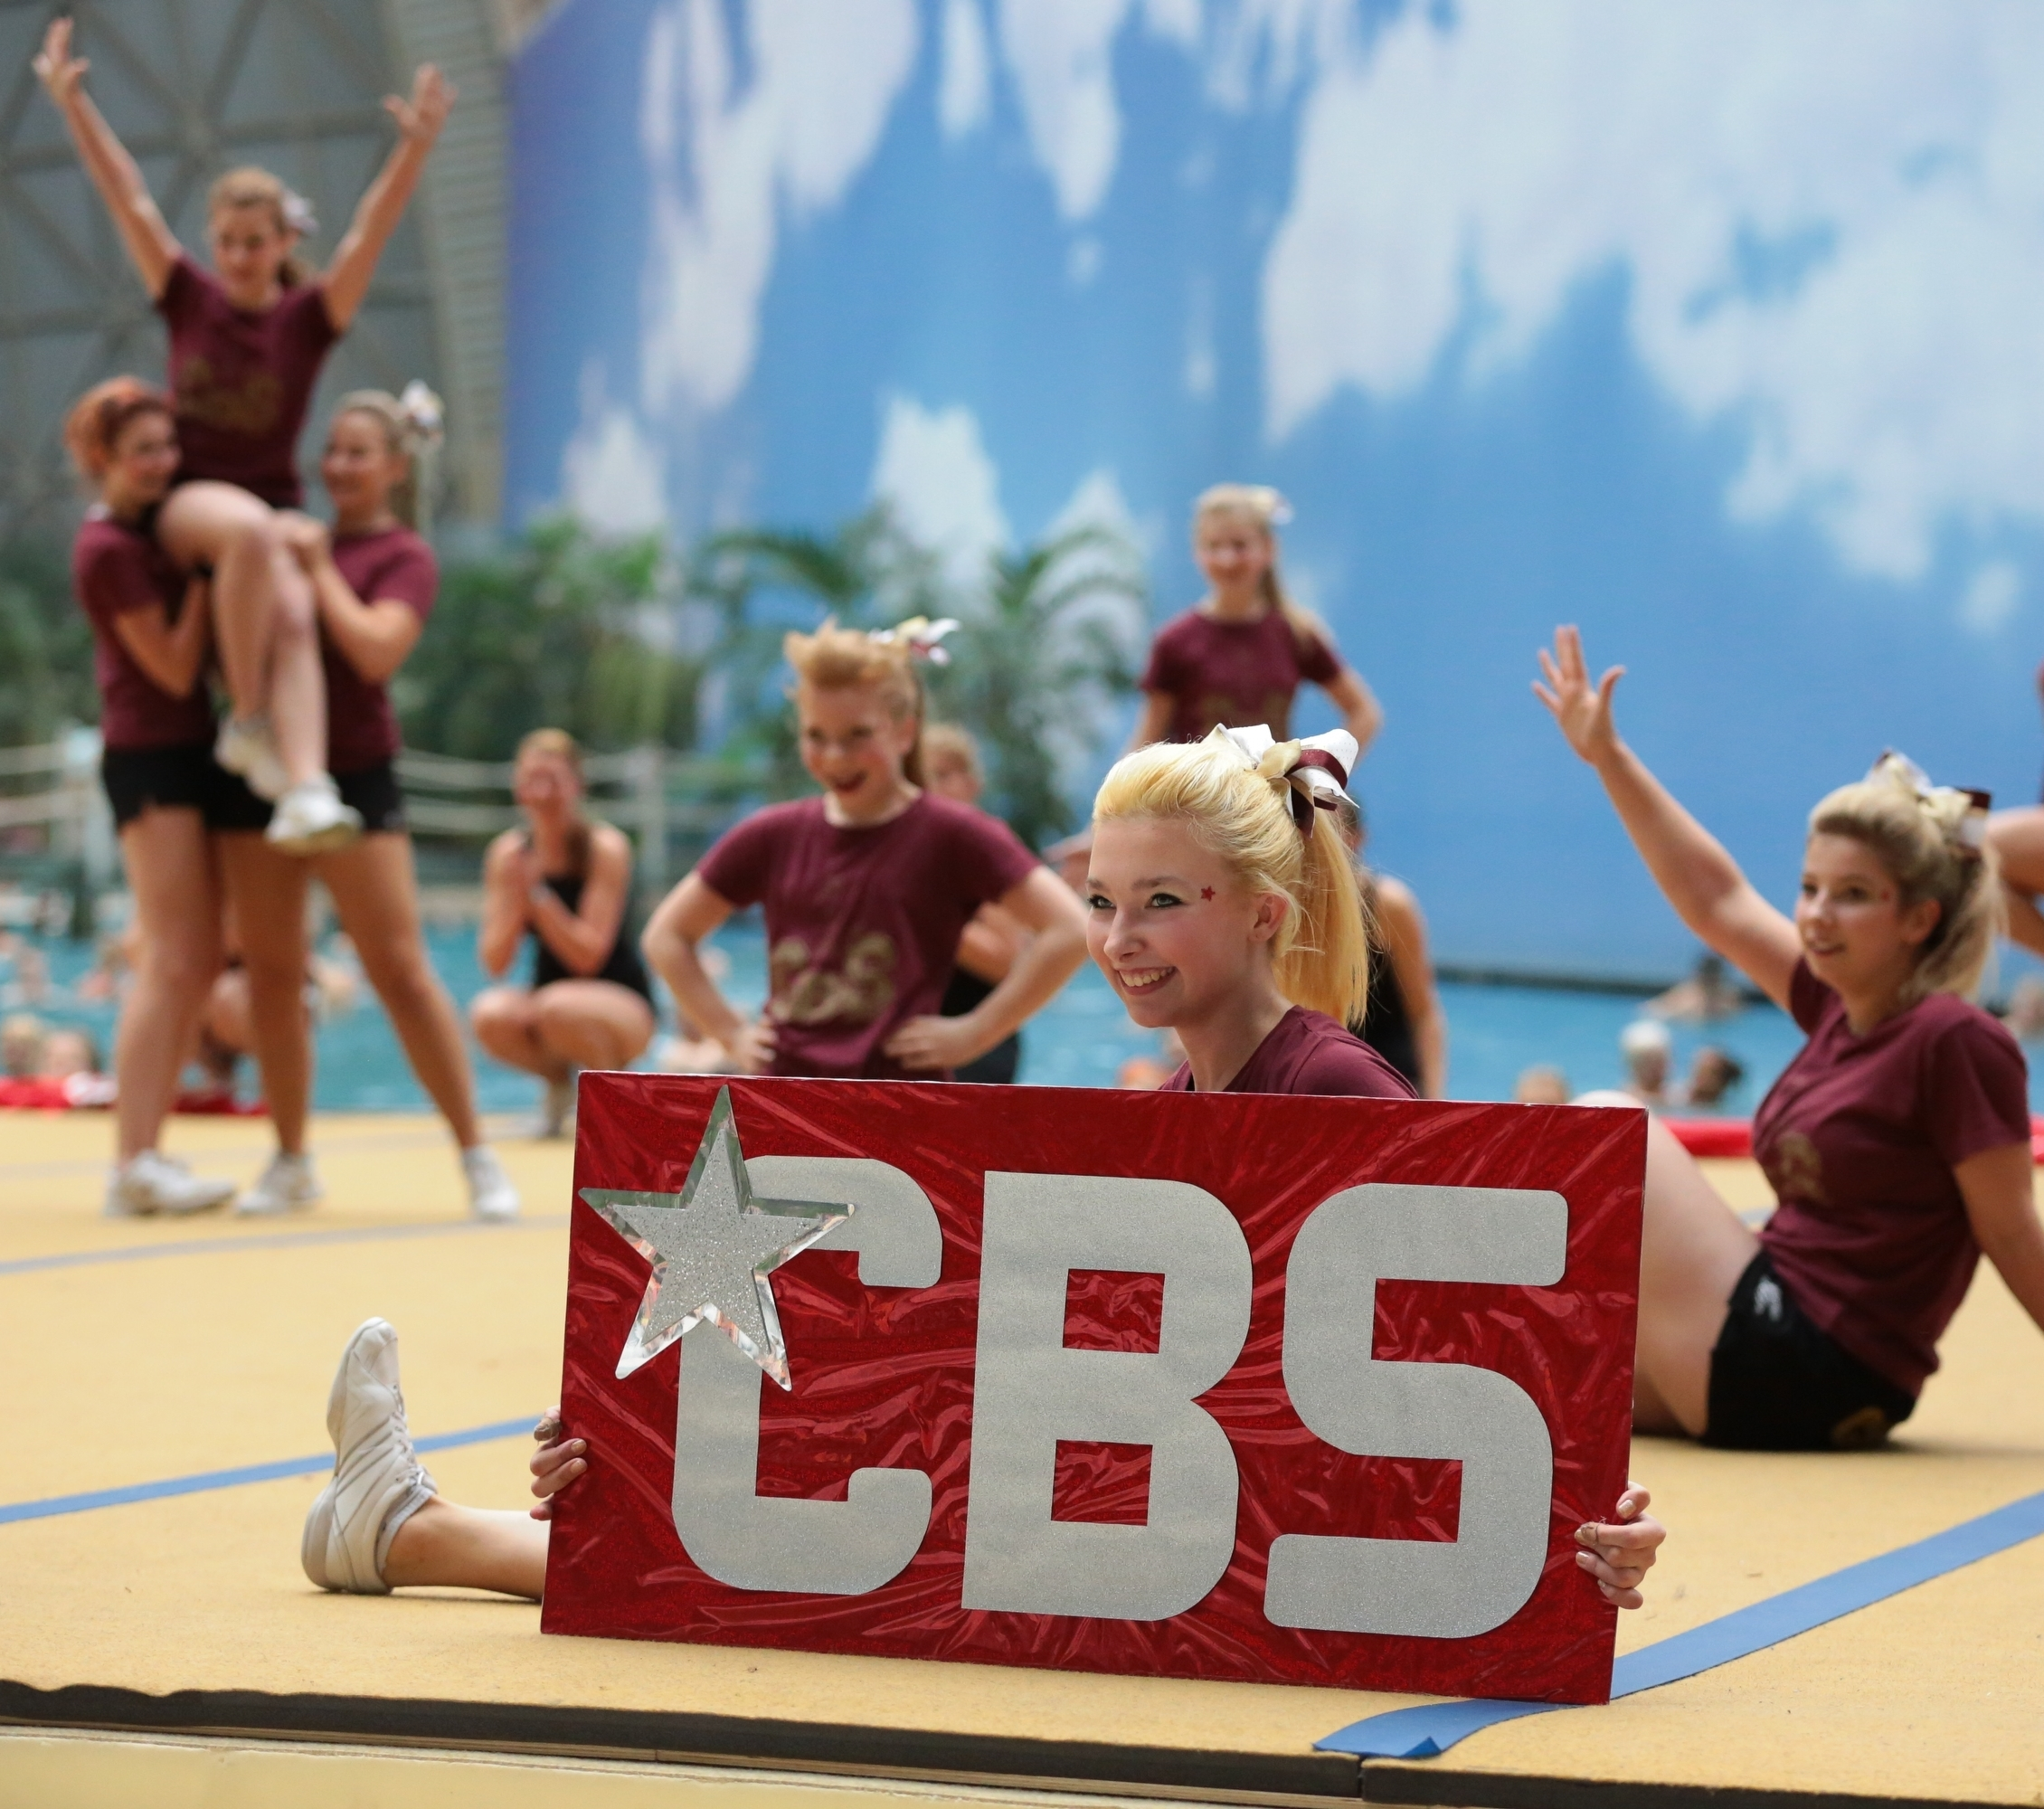 CBS Cheer Sensation Cottbus